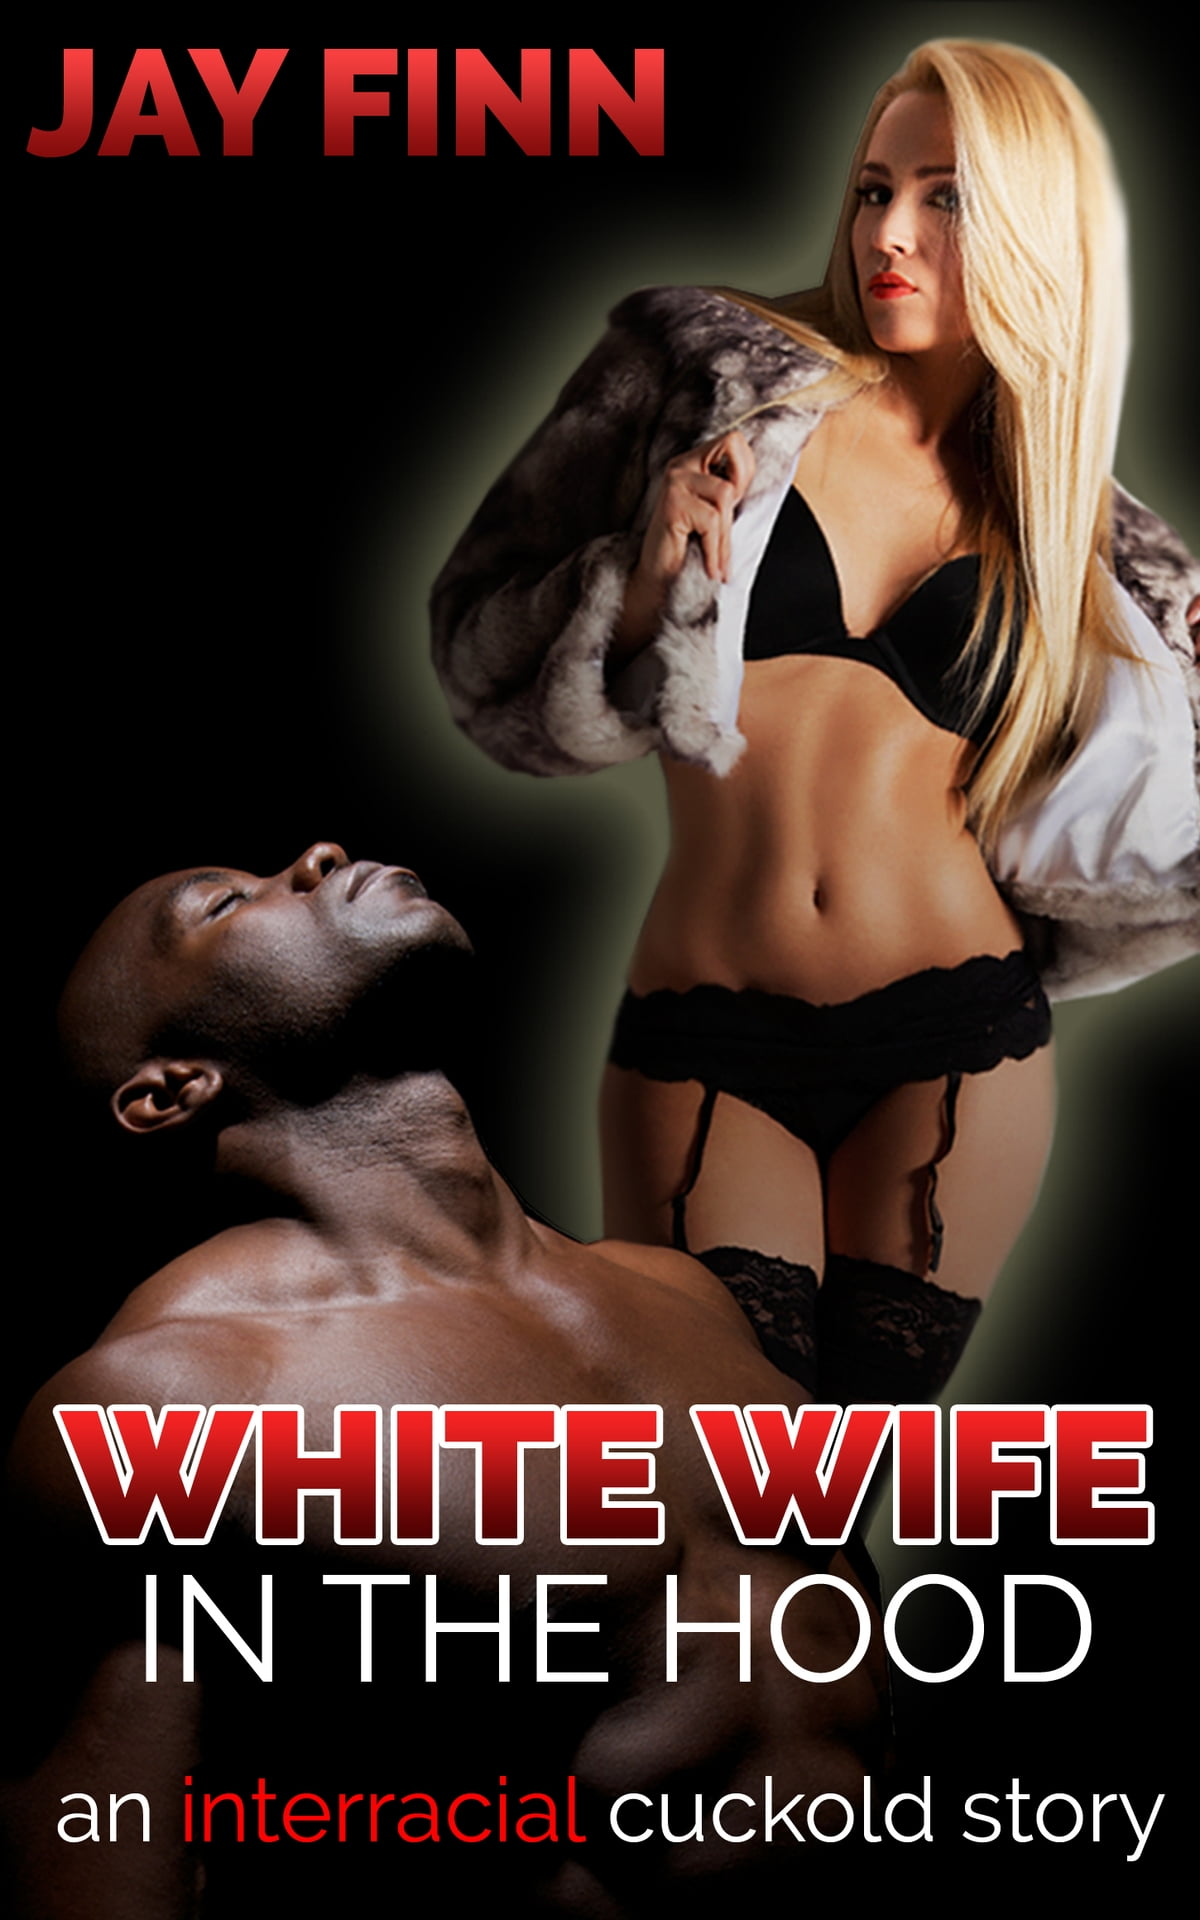 White Wife In The Hood An Interracial Cuckold Story Ebook -3971